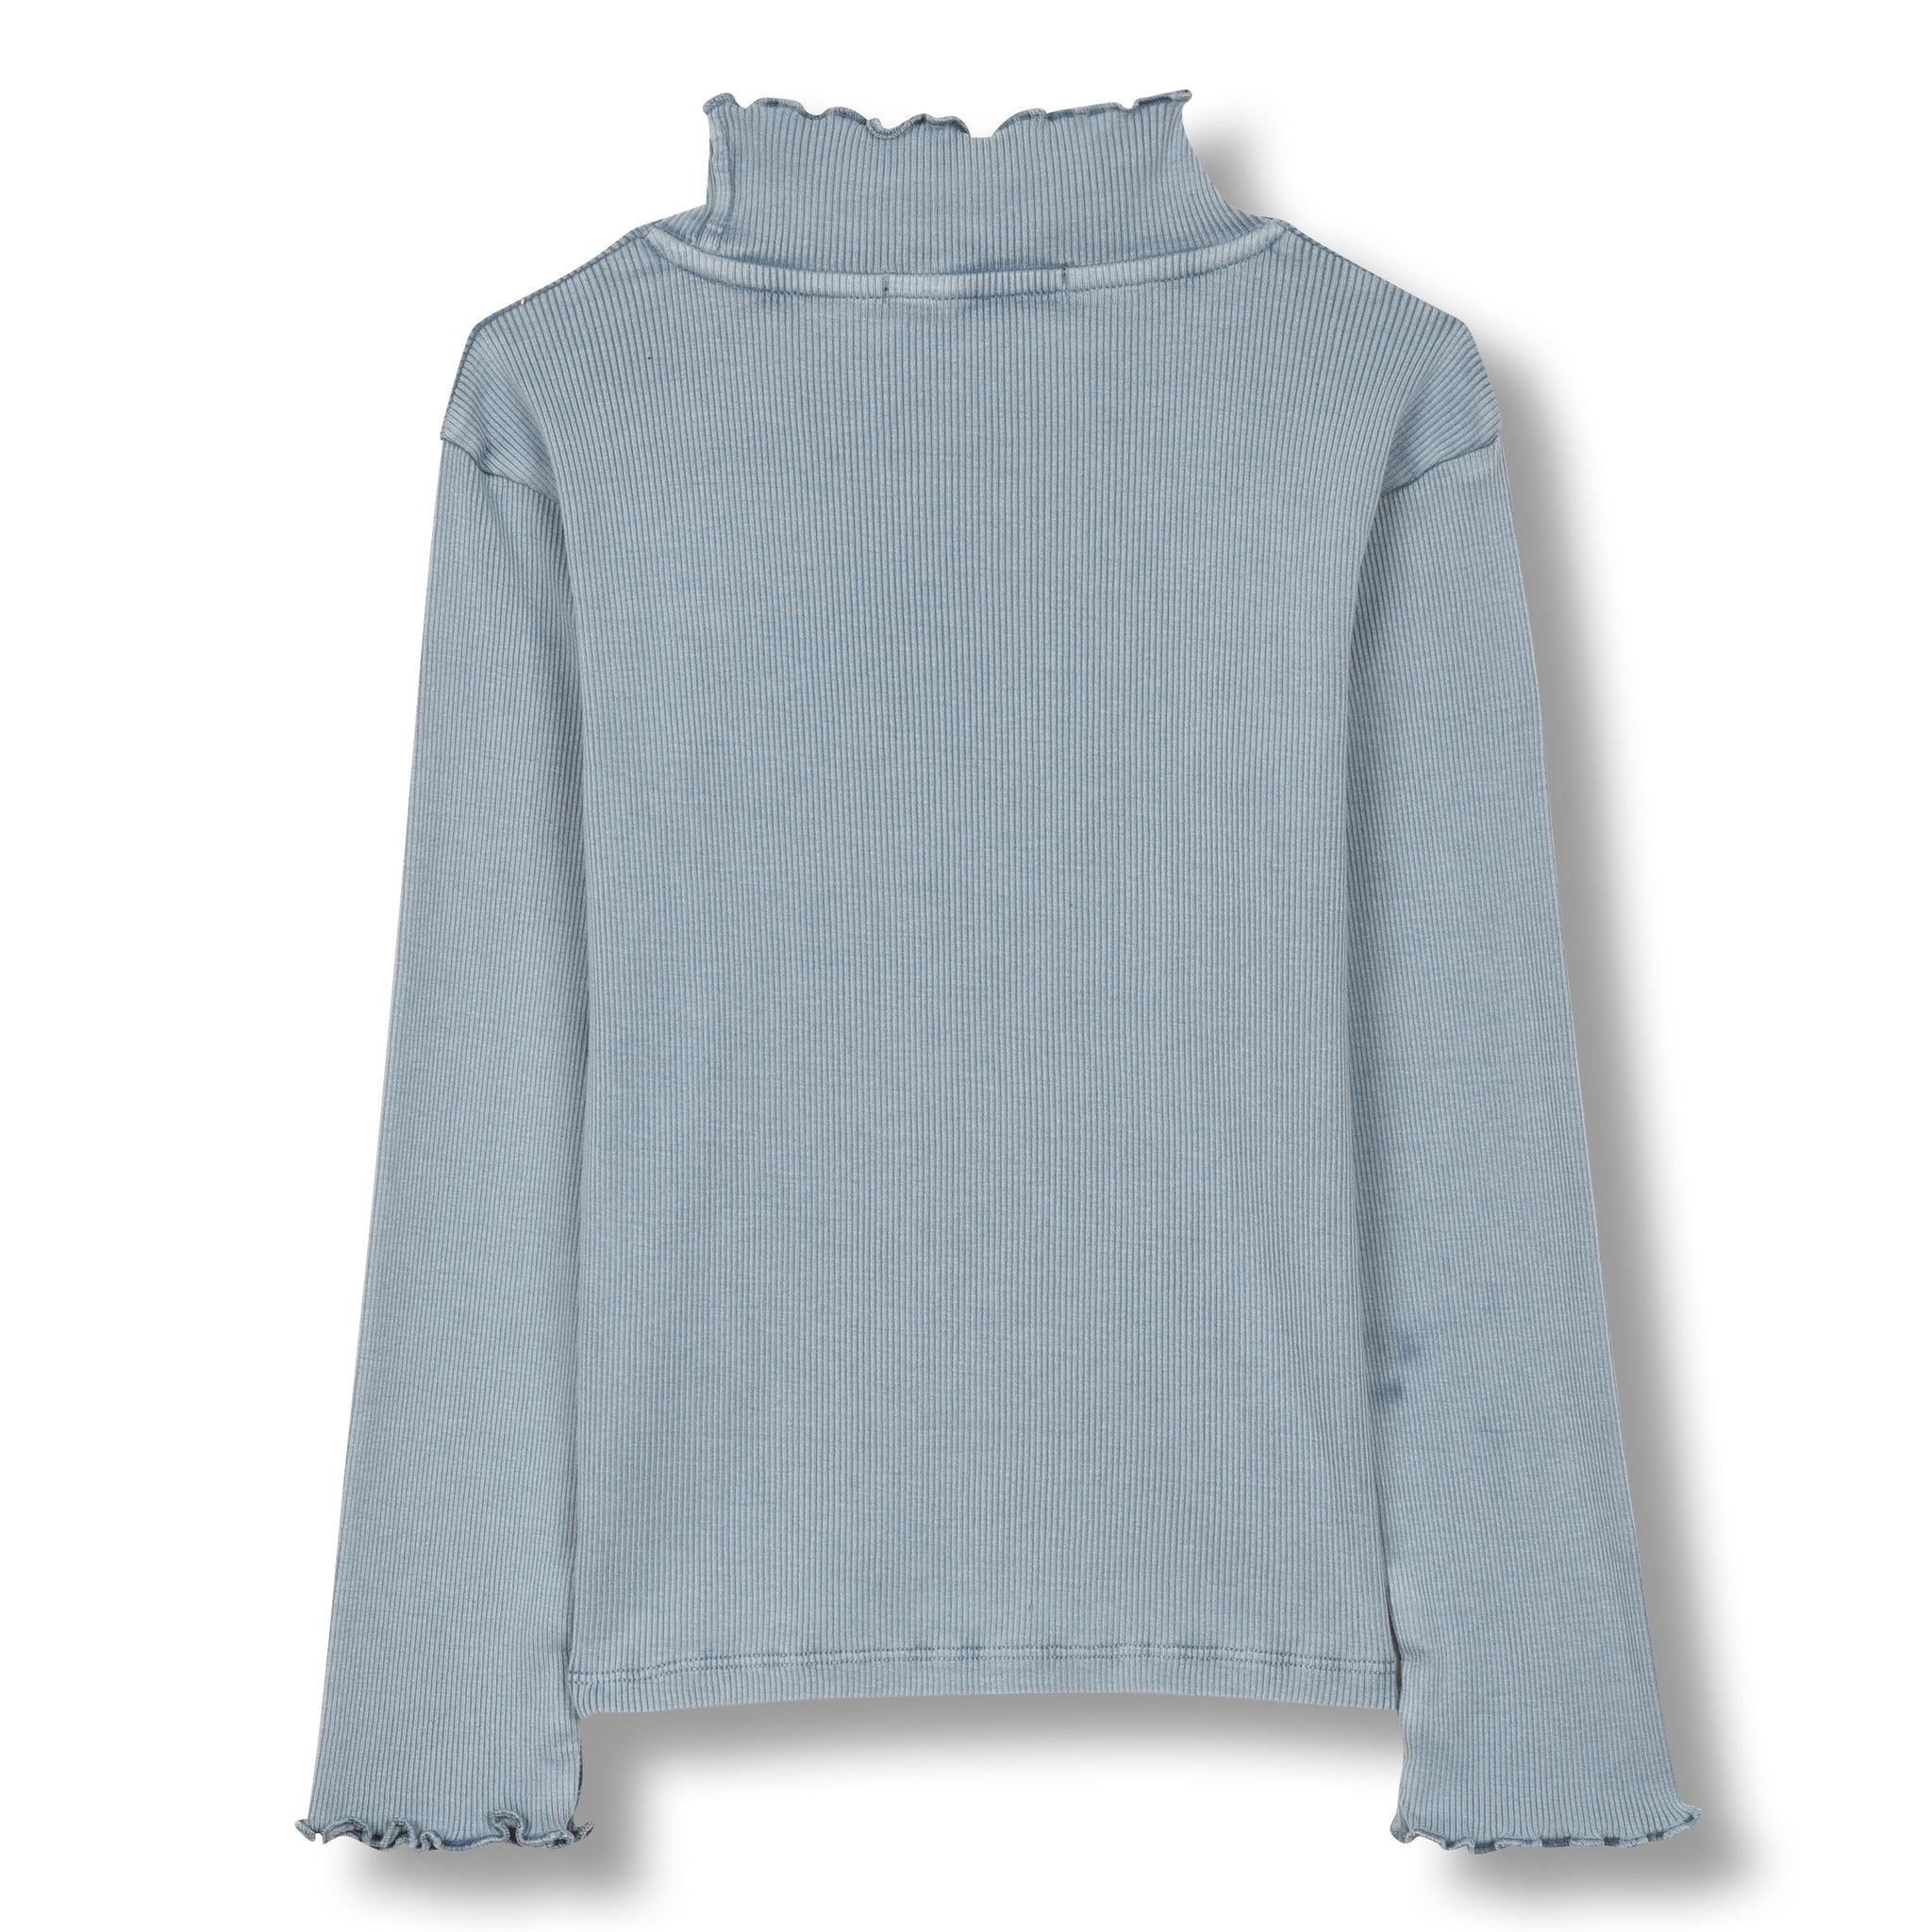 SPICE Stone Blue - Long Sleeves High Collar T-shirt 2